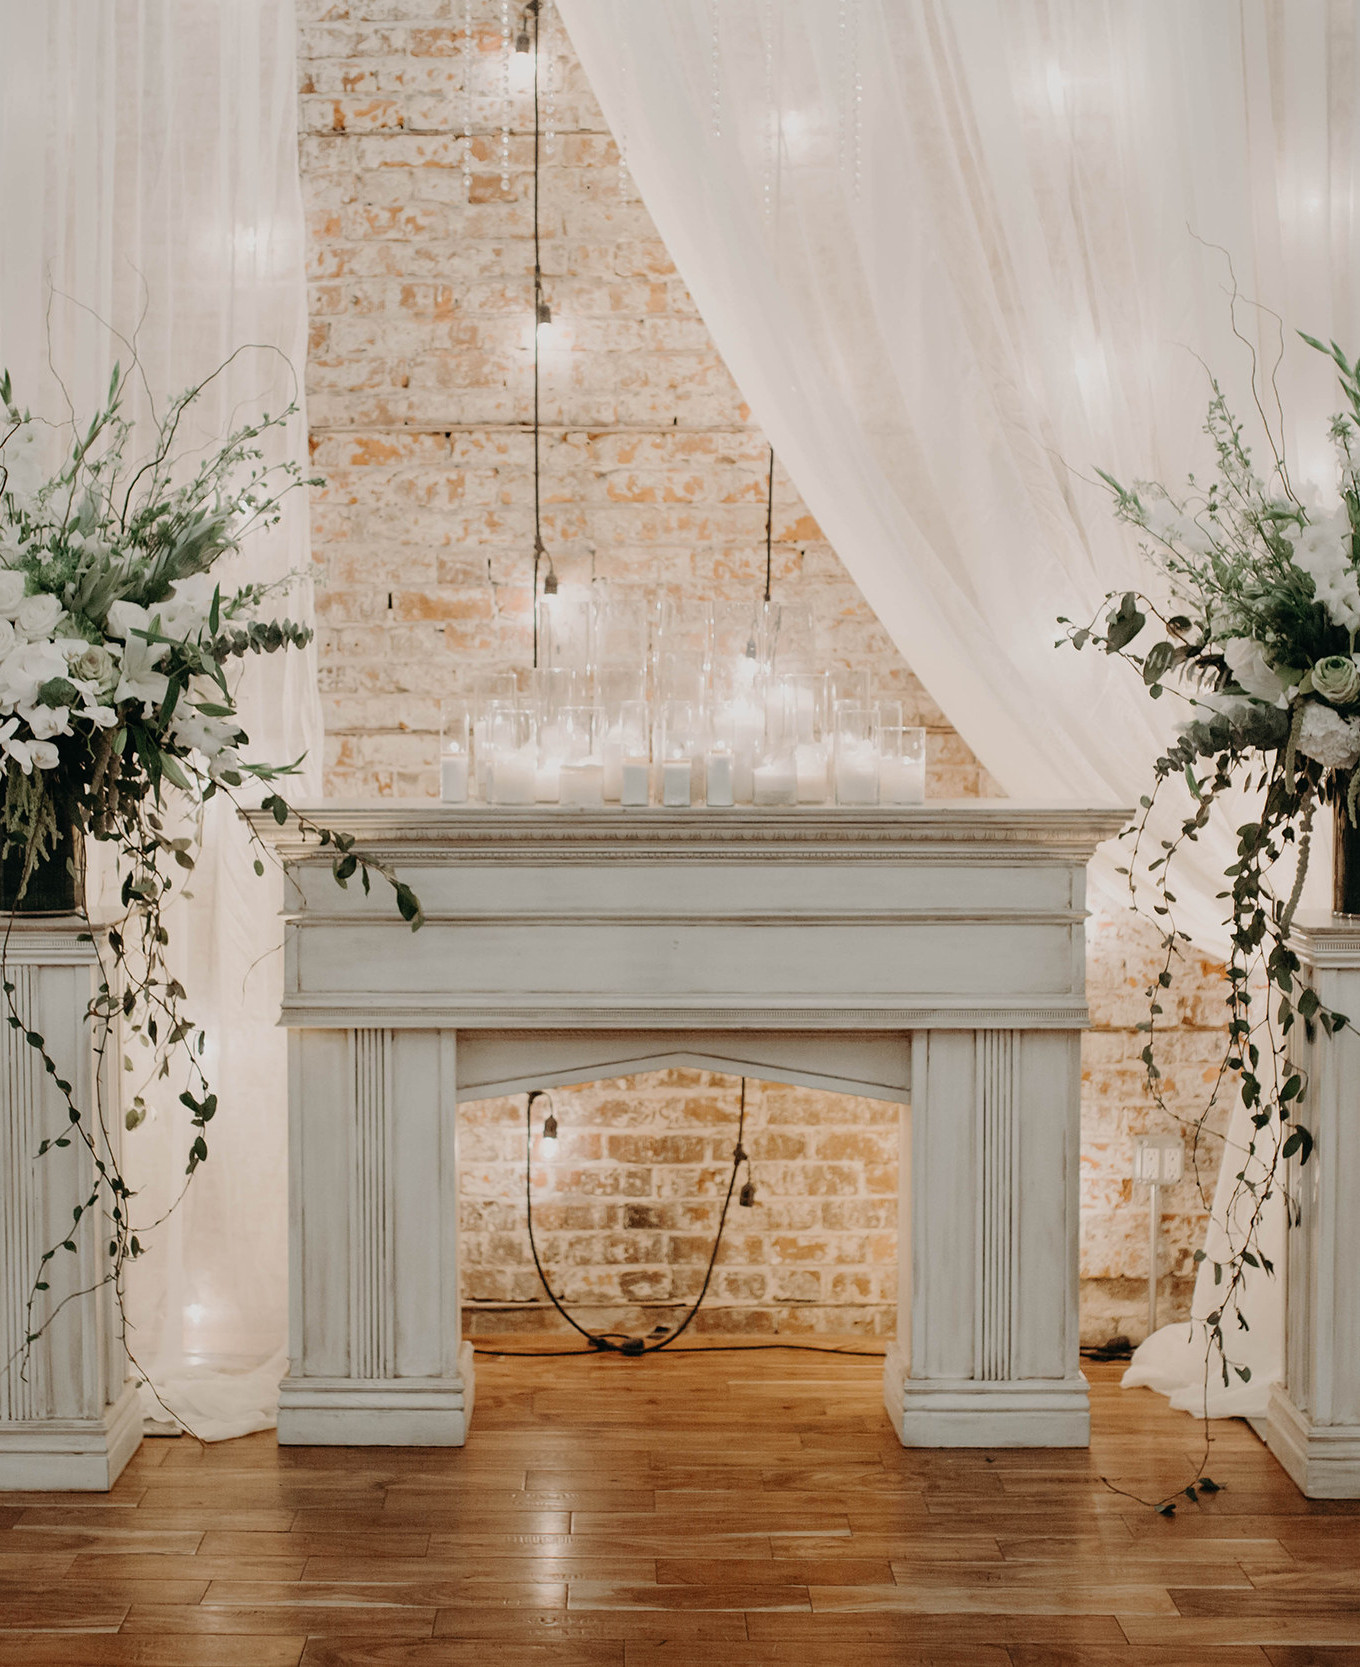 KC Wedding@ undisclosed location. Two Large white and creme pedestal arrangements for ceremony.JPG